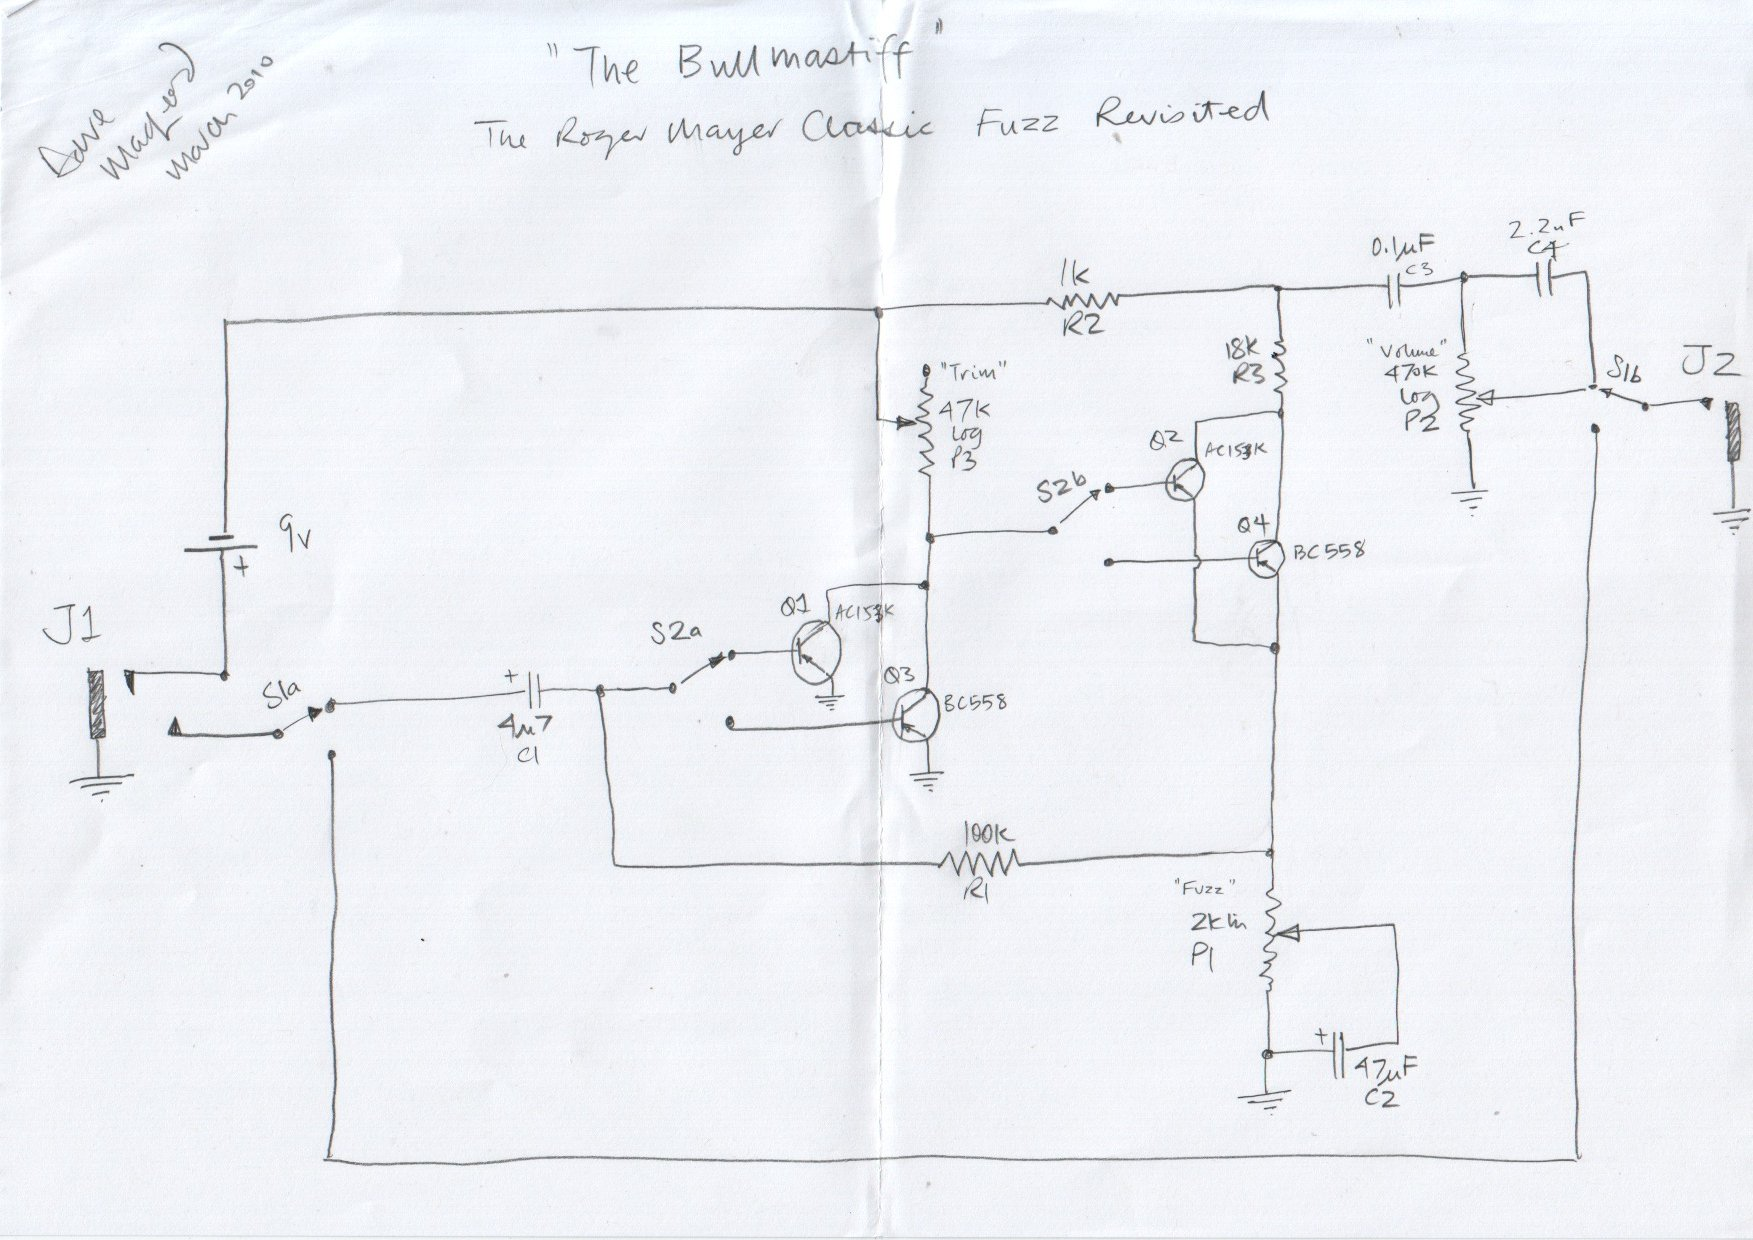 germanium fuzz pedal schematic